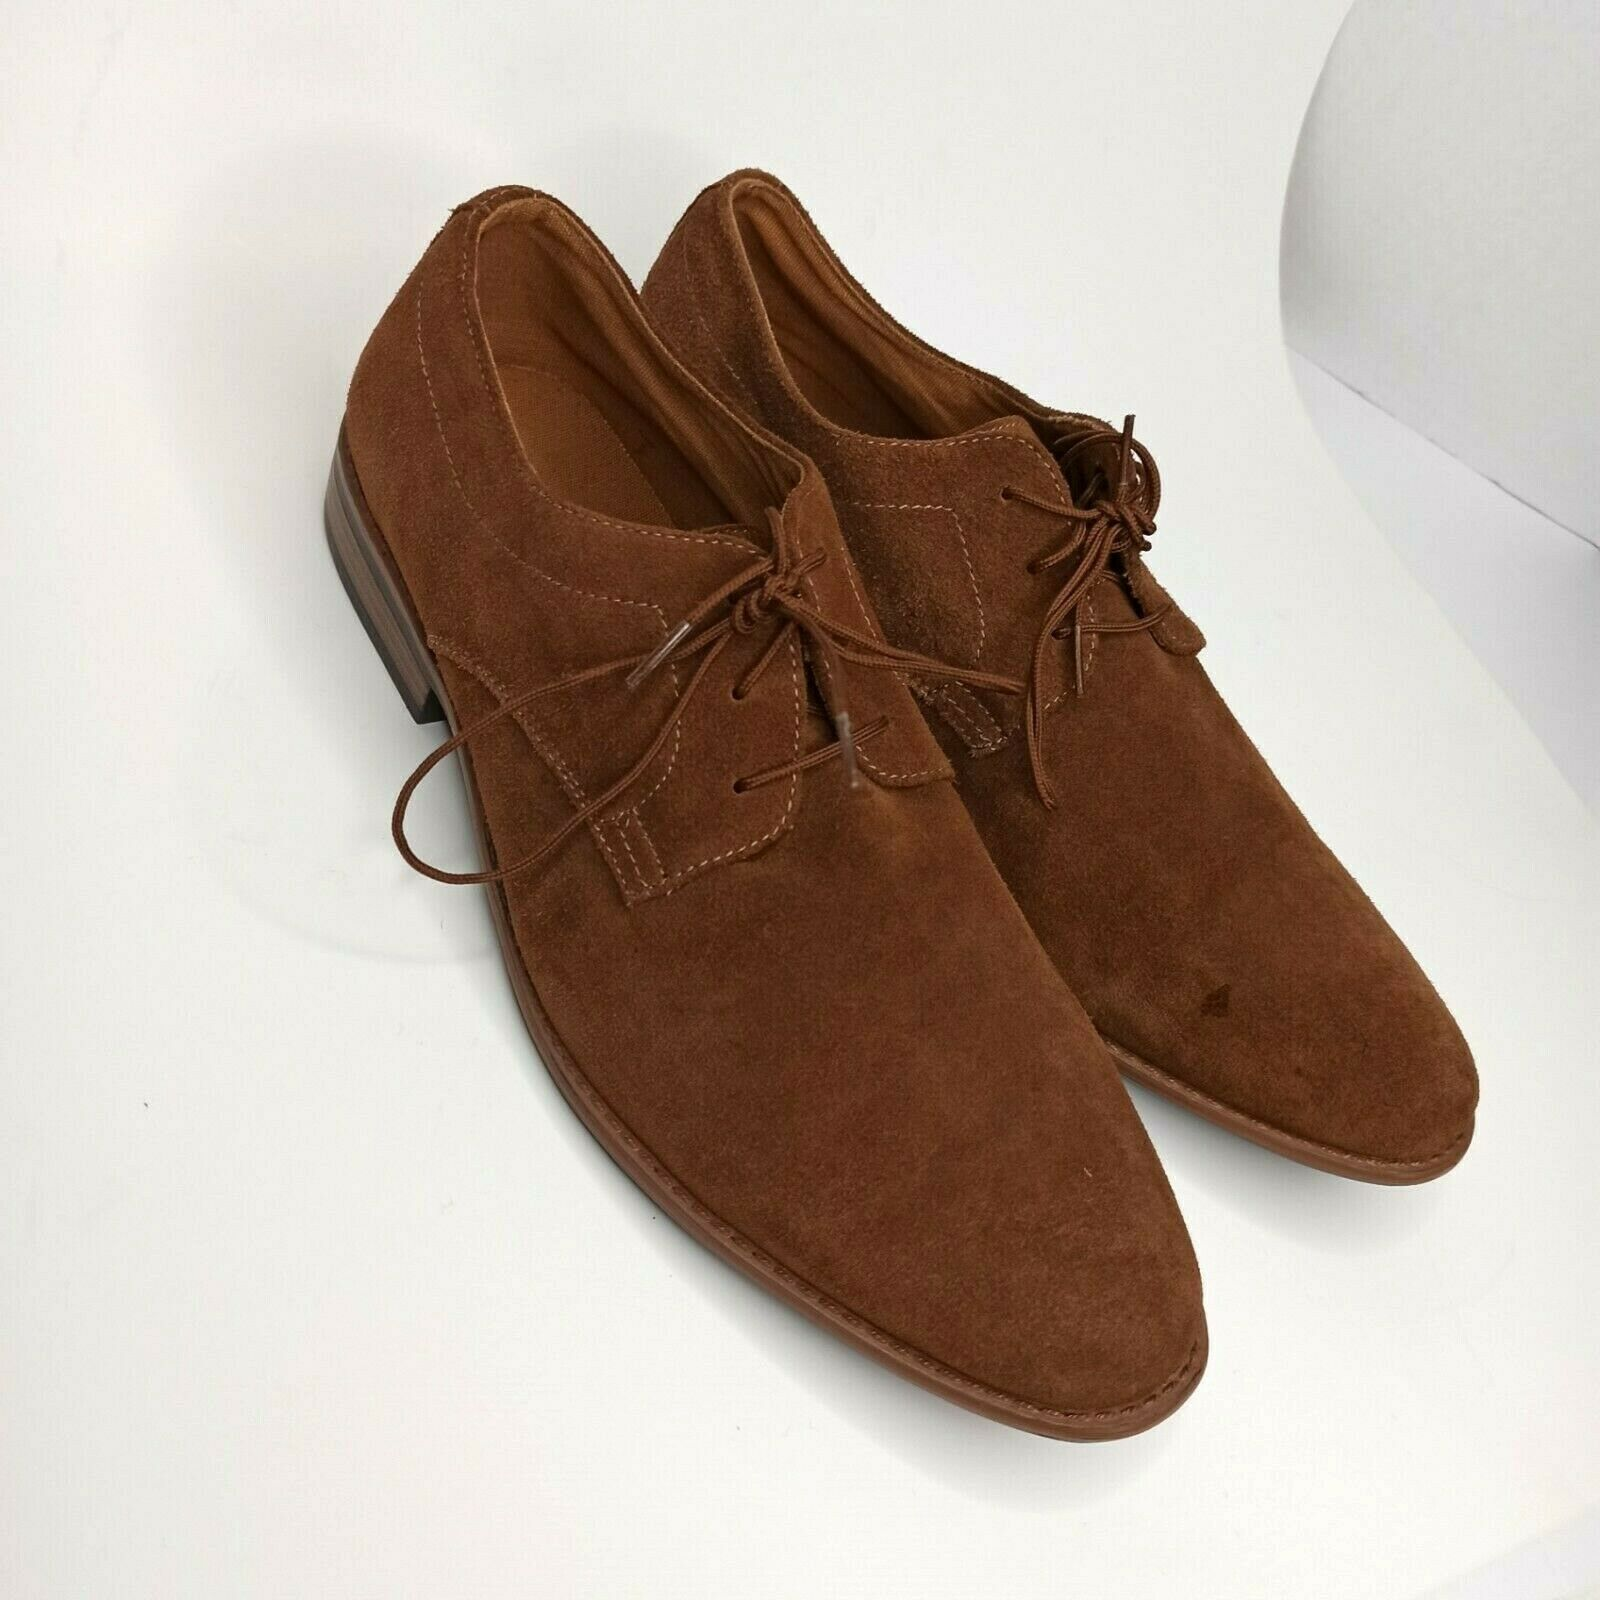 J75 By Jump Mens Oxford Dress Shoes Maroon Leather Lace Up Round Toe Size US 13